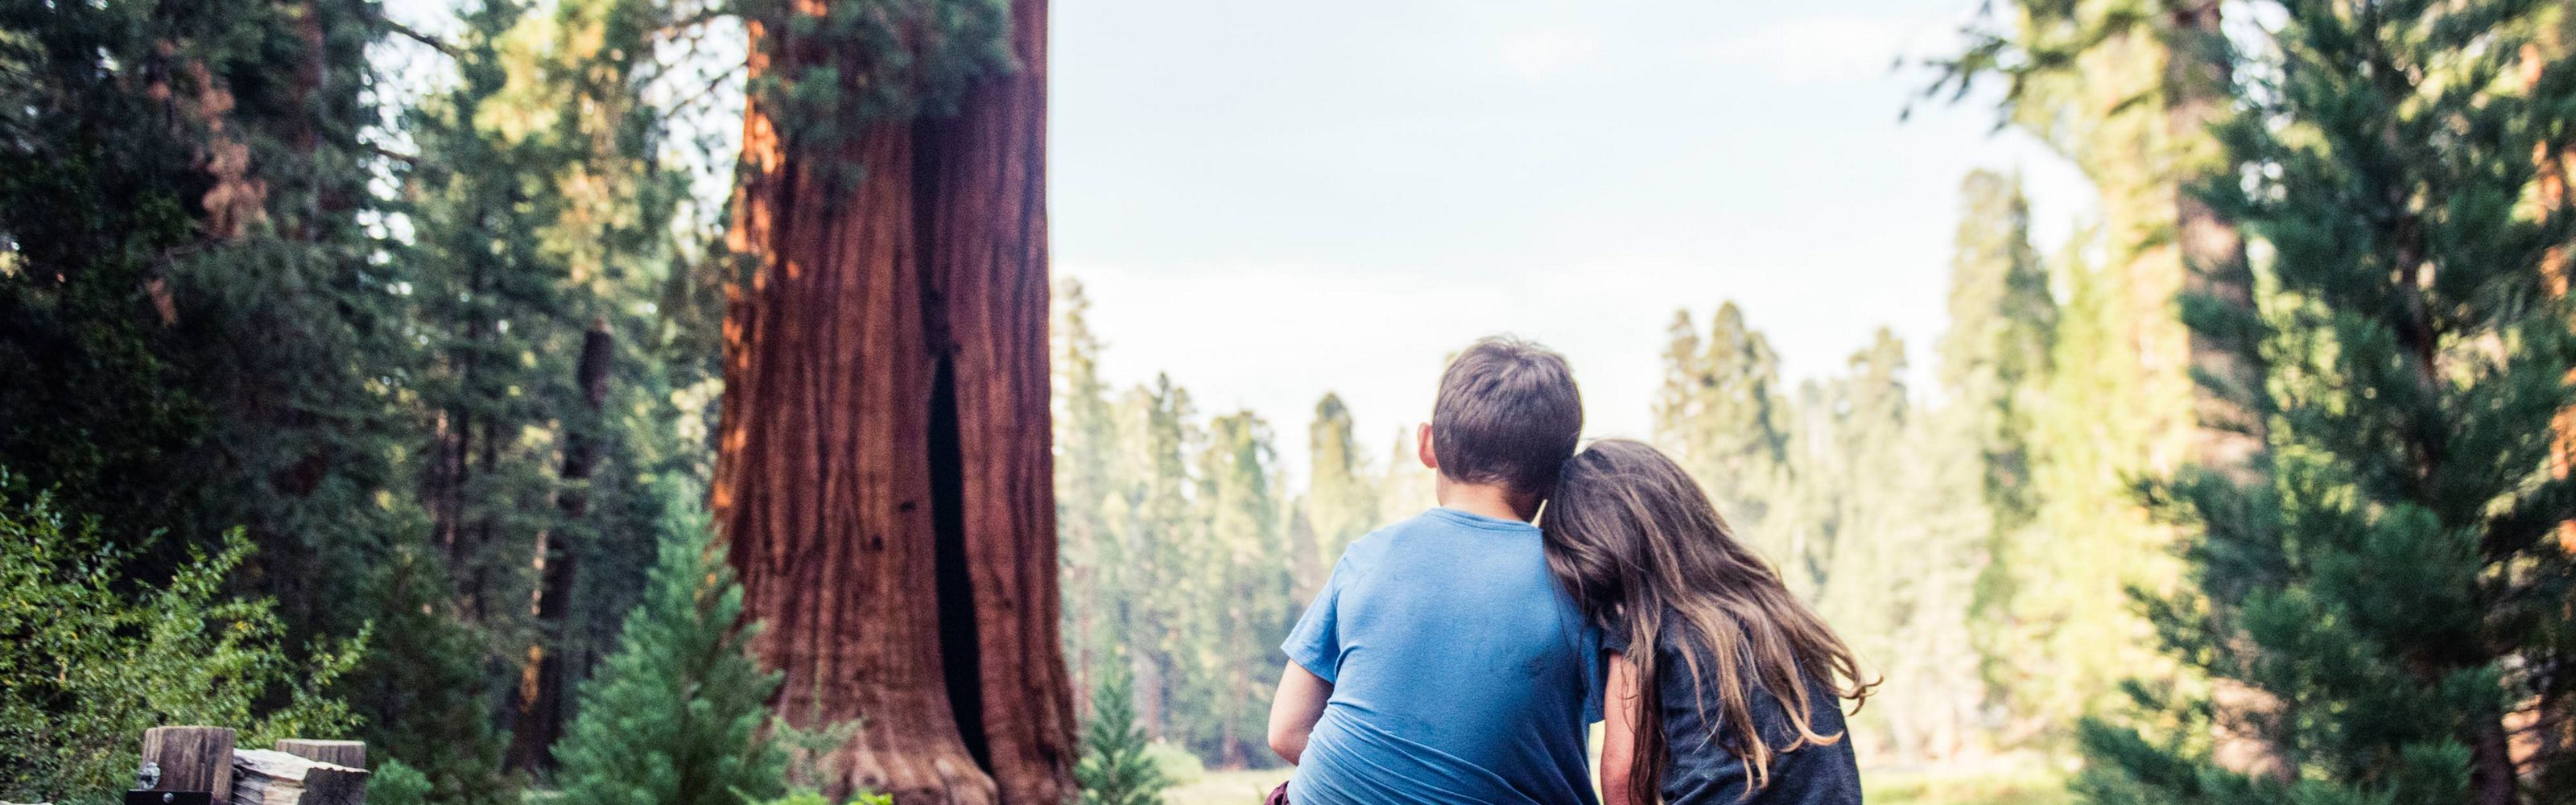 Two kids viewed from behind, sitting on a bench together in a redwood forest.